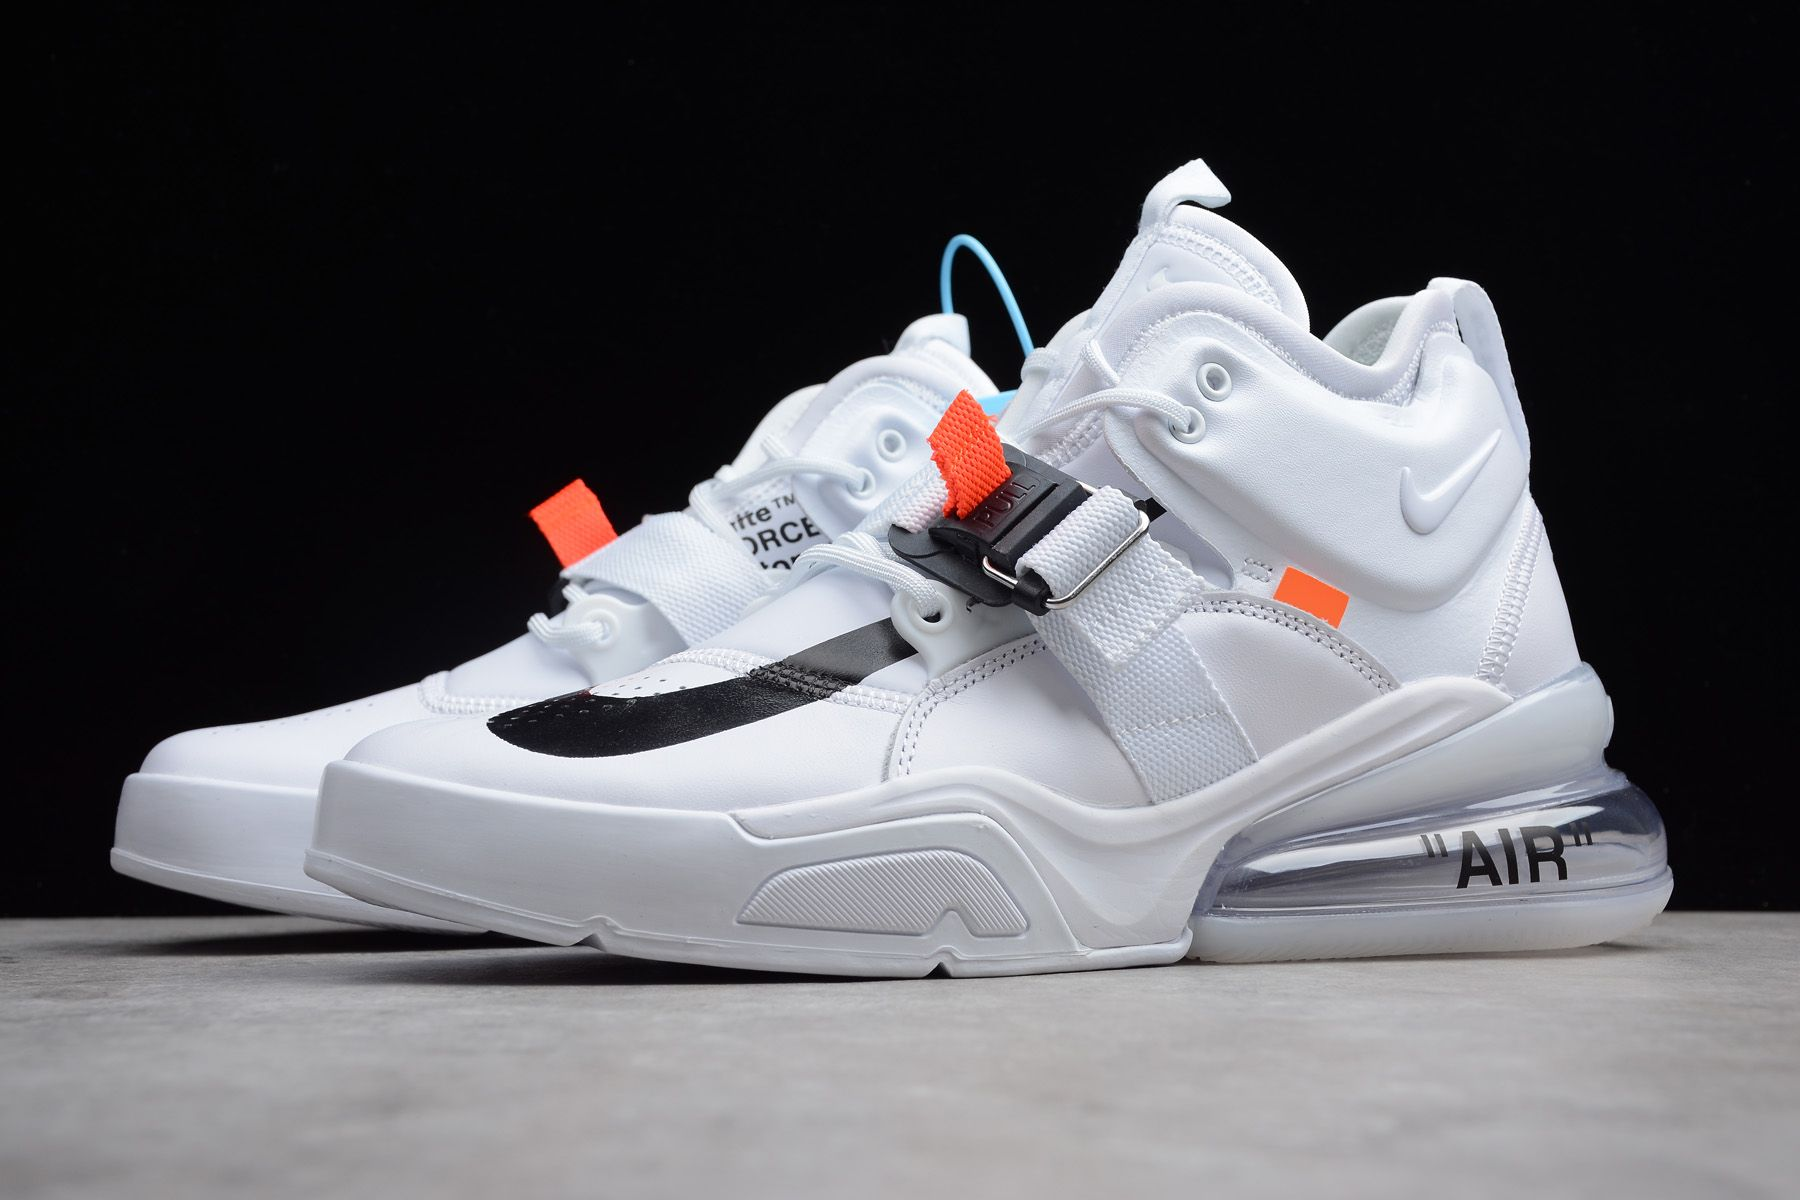 fbdbc20e6f Off-White x Nike Air Force 270 White/Black Shoes in 2019 | Nike Air ...